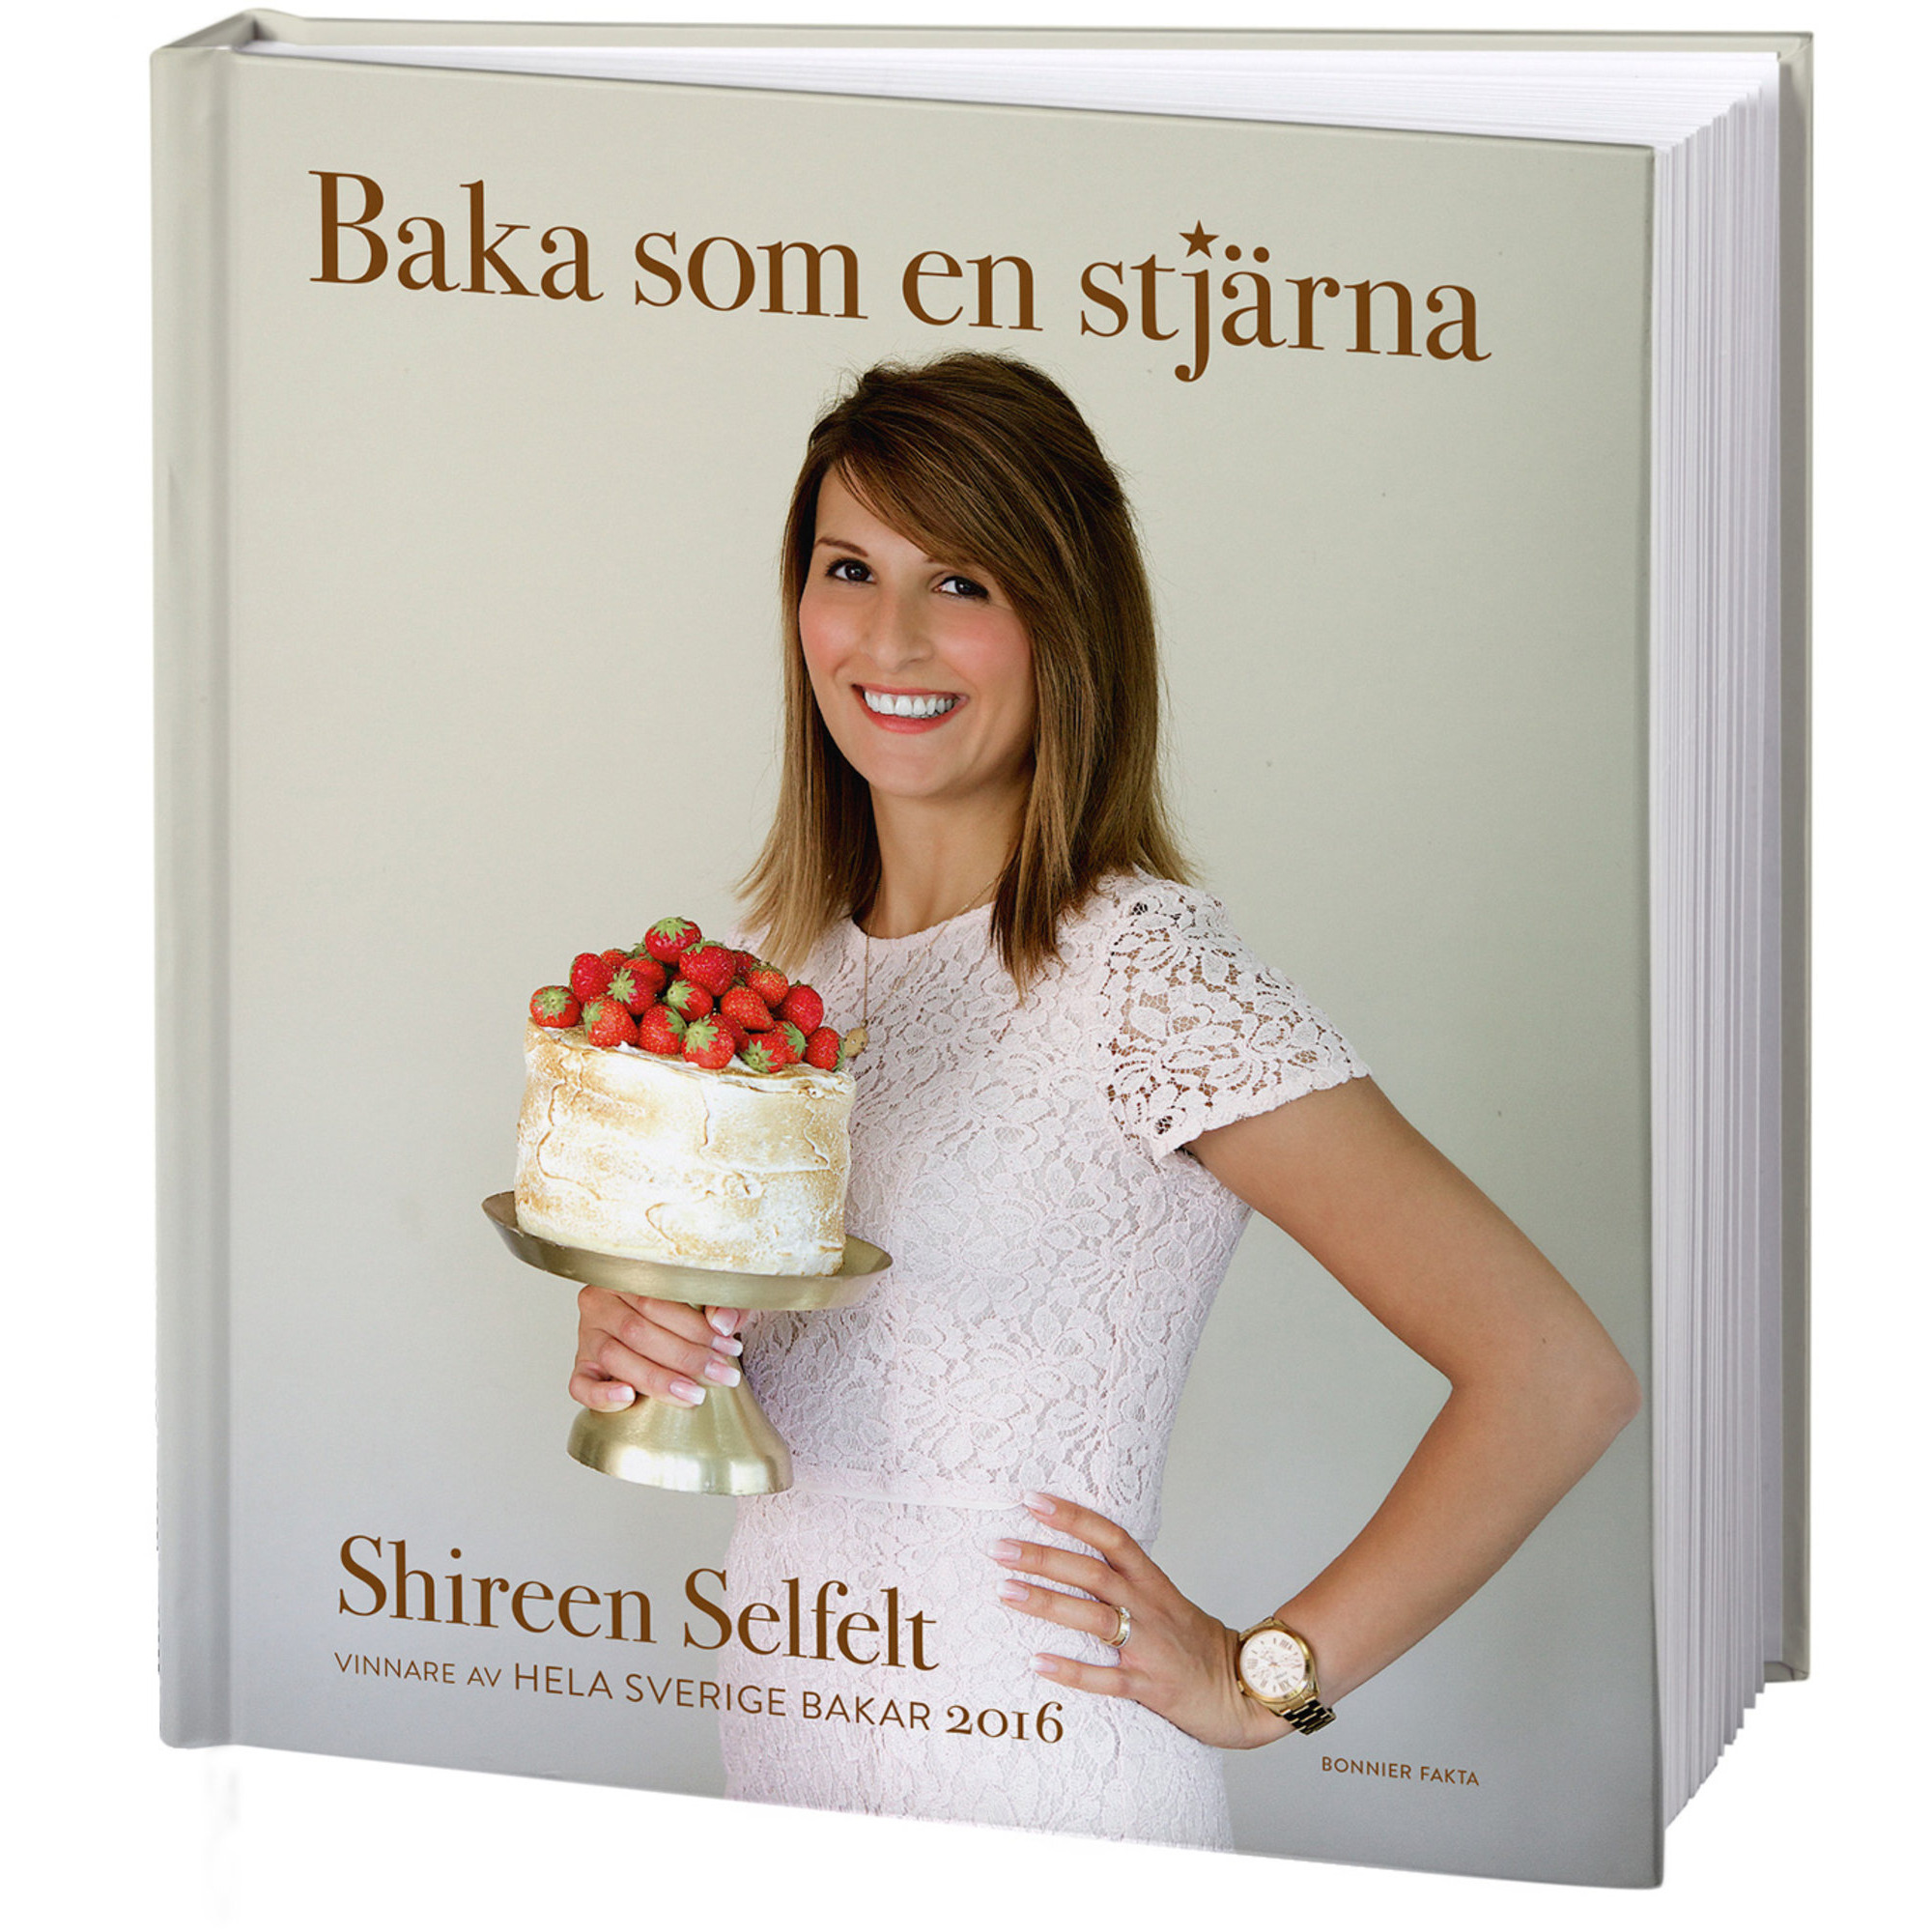 Kitchen Basic Shireen Selfelt Baka som en stjärna